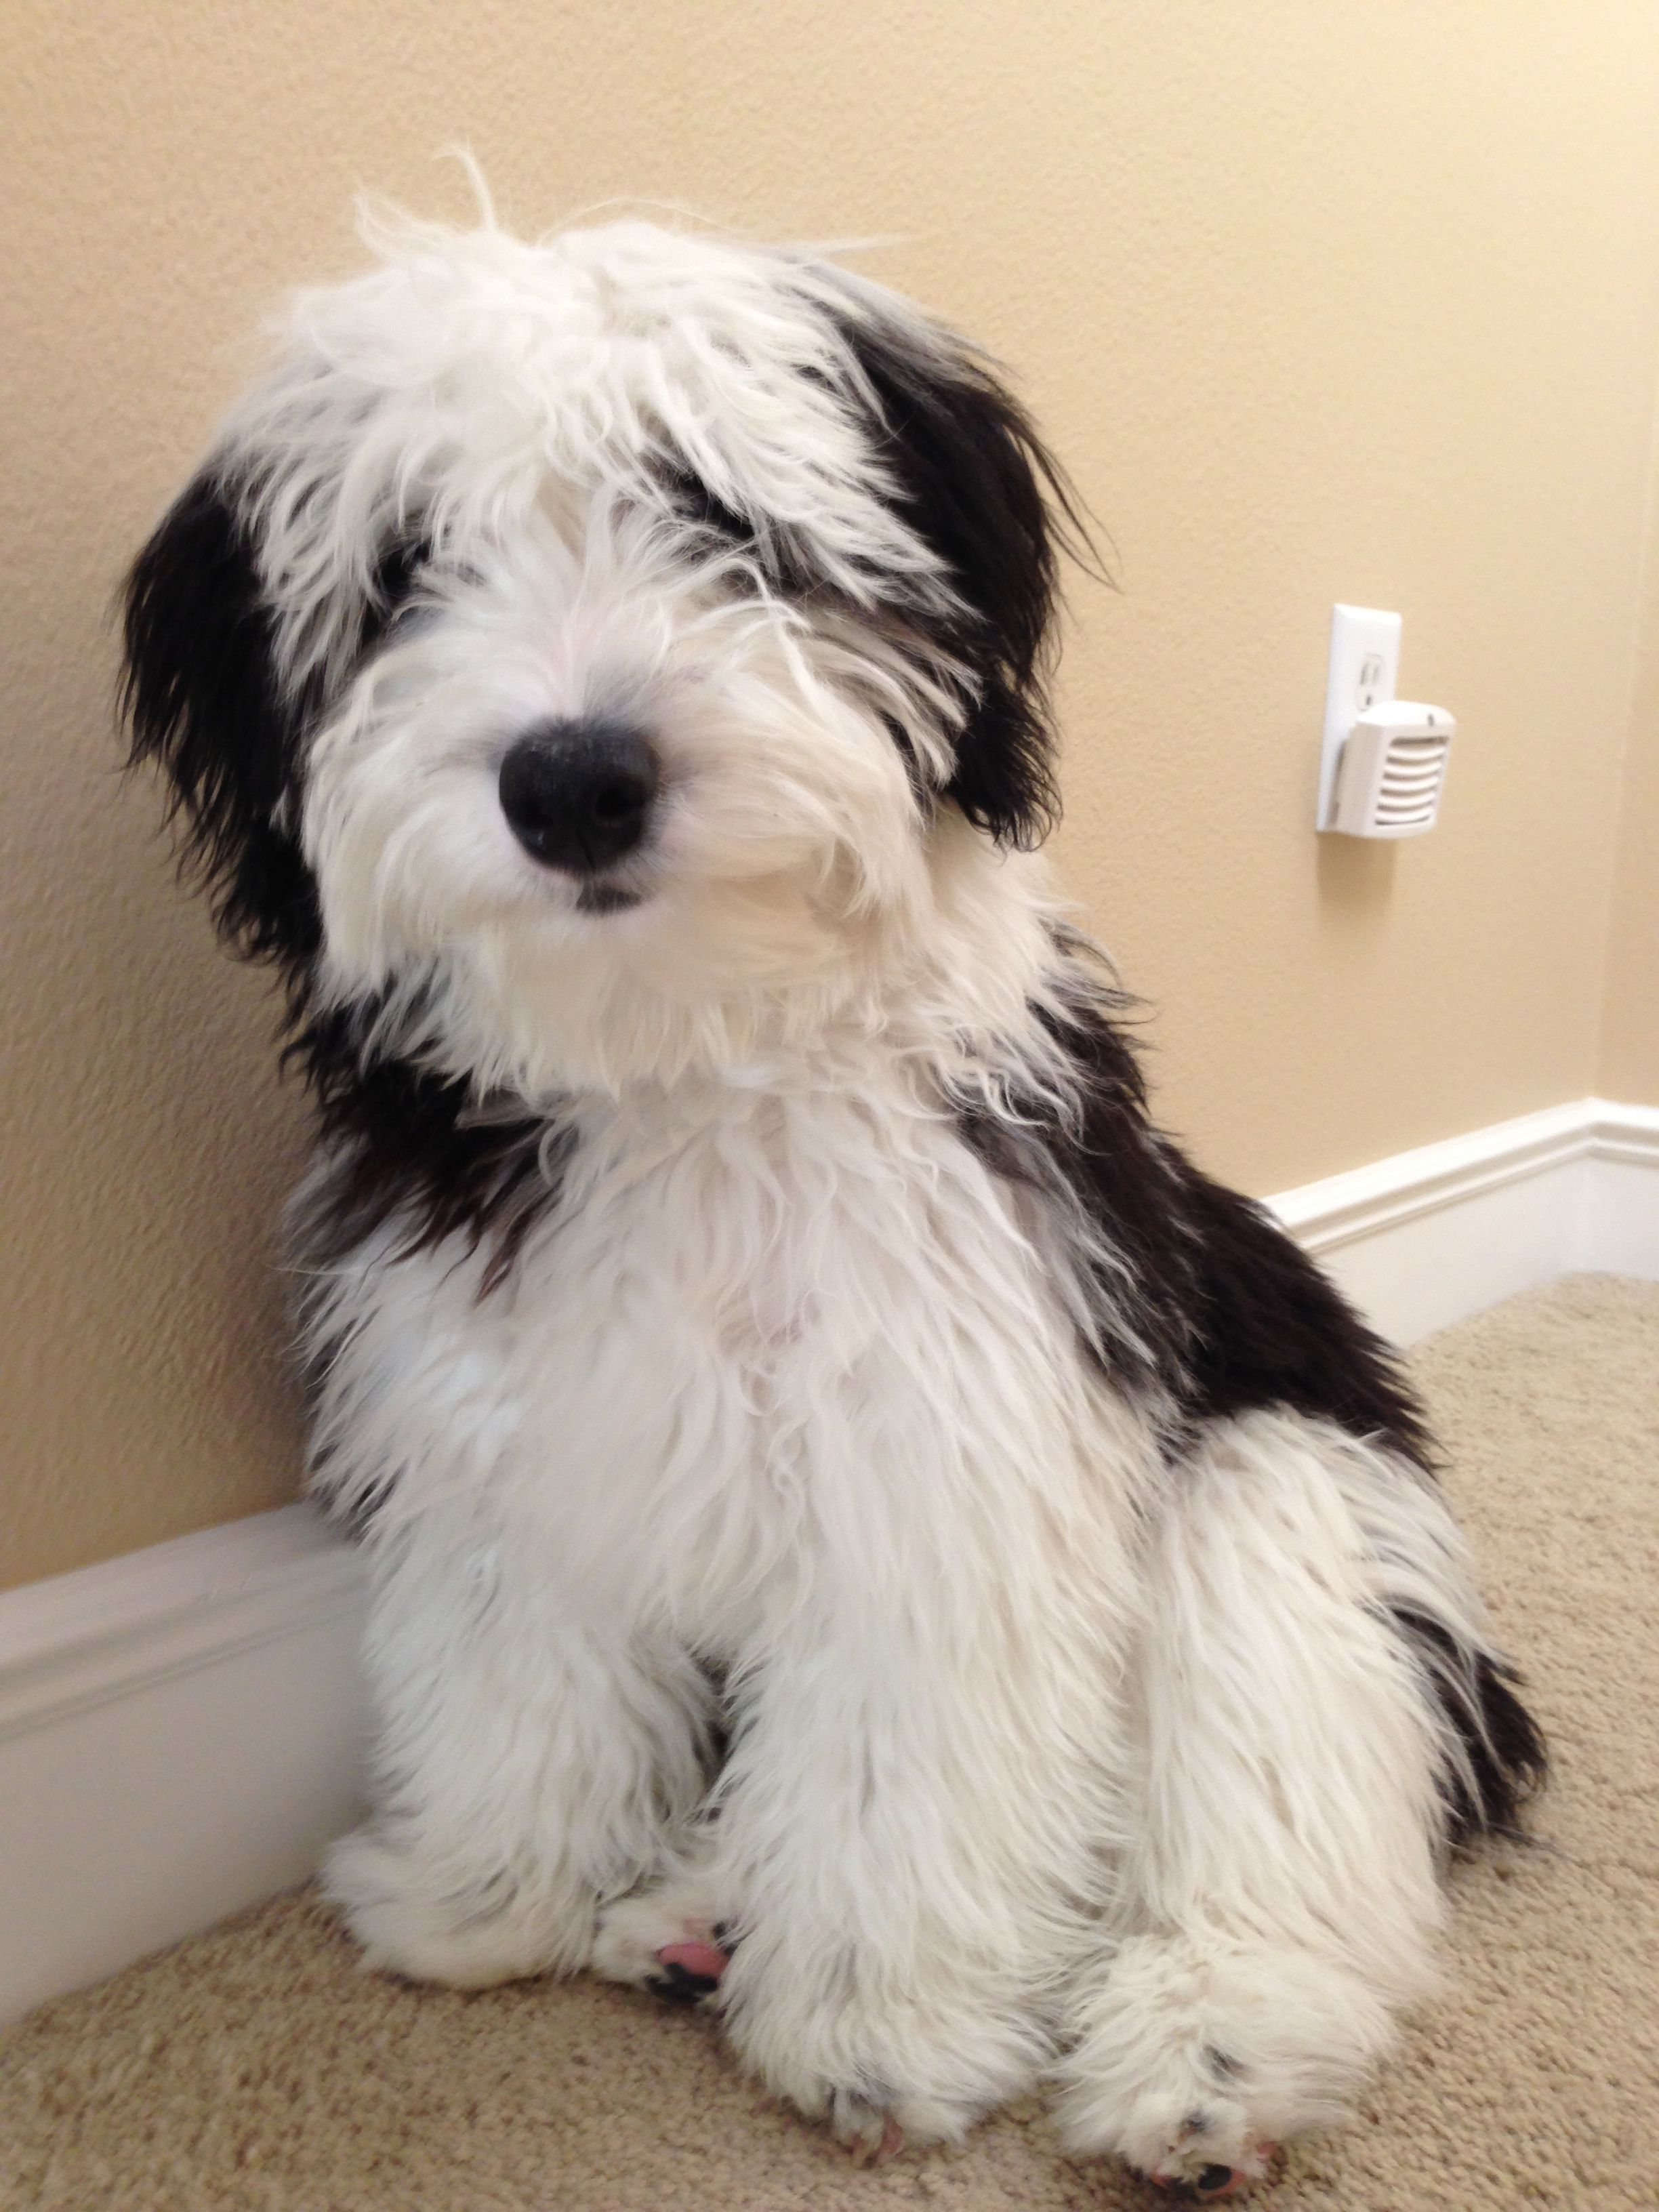 If I Ever Get A Dog Puppies Sheepadoodle Puppy Dogs